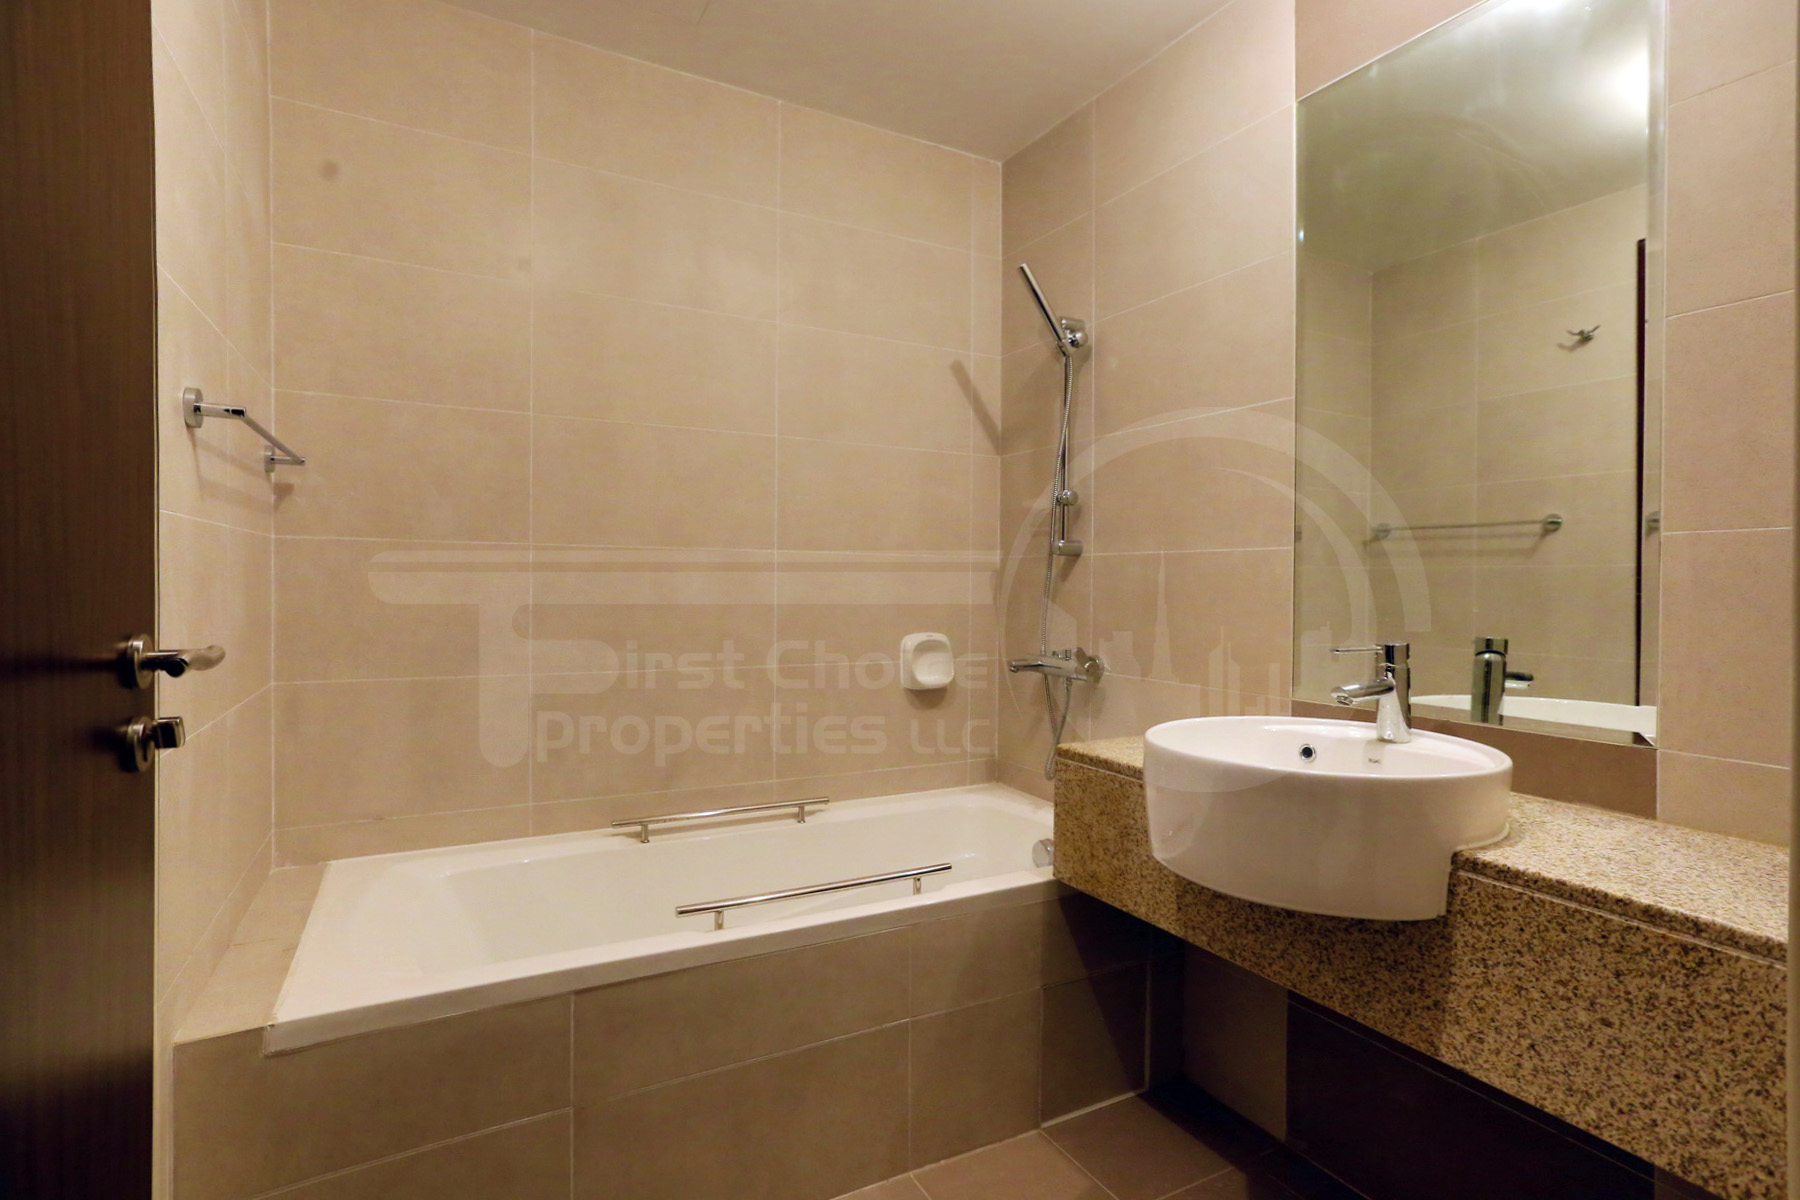 Studio Apartment - Abu Dhabi - UAE - Al Reem Island - City of Lights - C10 Building (2).JPG